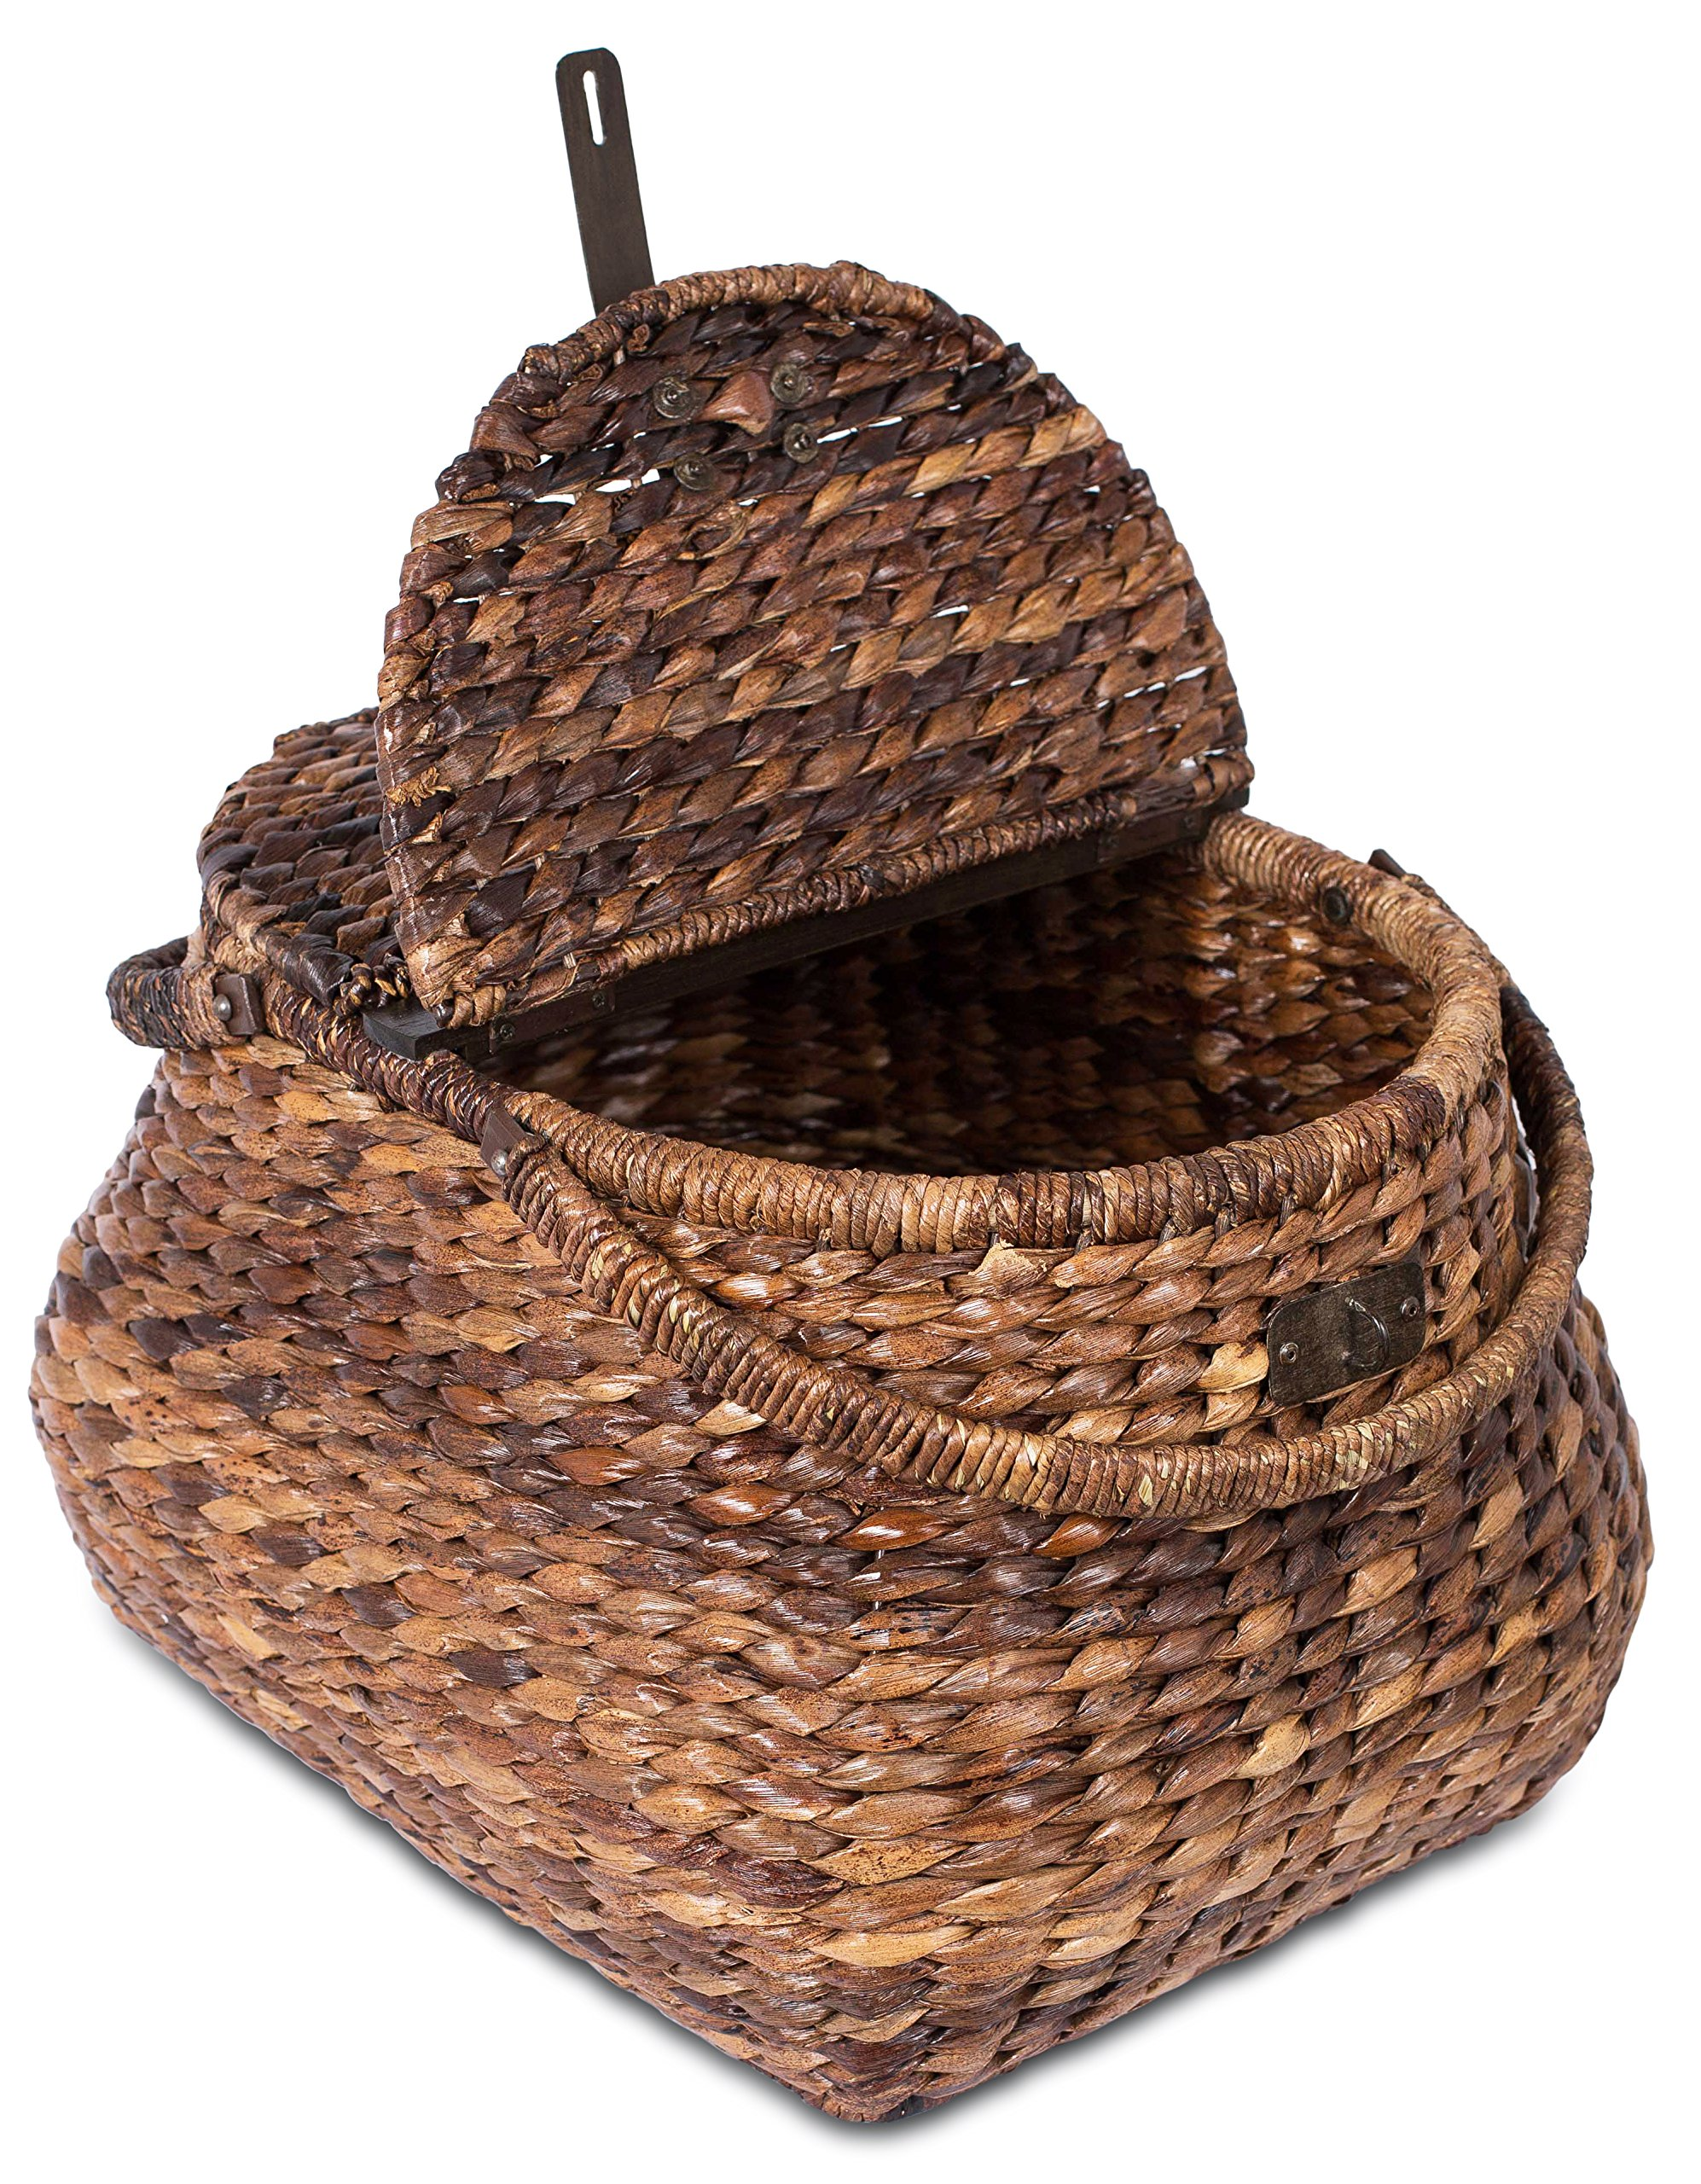 BirdRock Home Seagrass Picnic Basket | Hand Woven | Espresso | Decorative Metal Latches | Divided Lid | Home Décor | Folding Handles